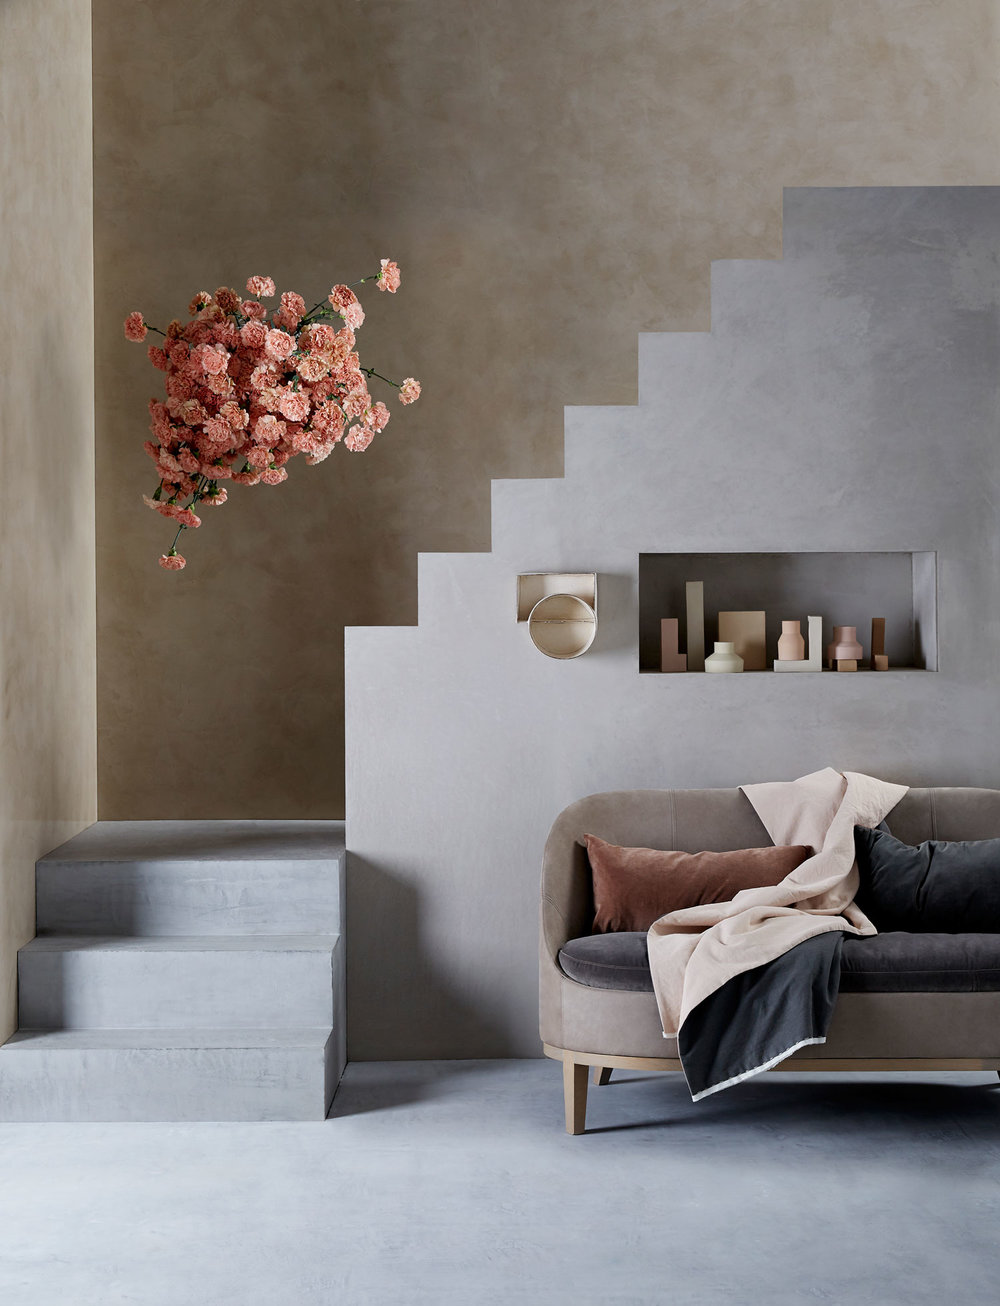 Elle Decoration / Alex Kristal / Kristy Noble